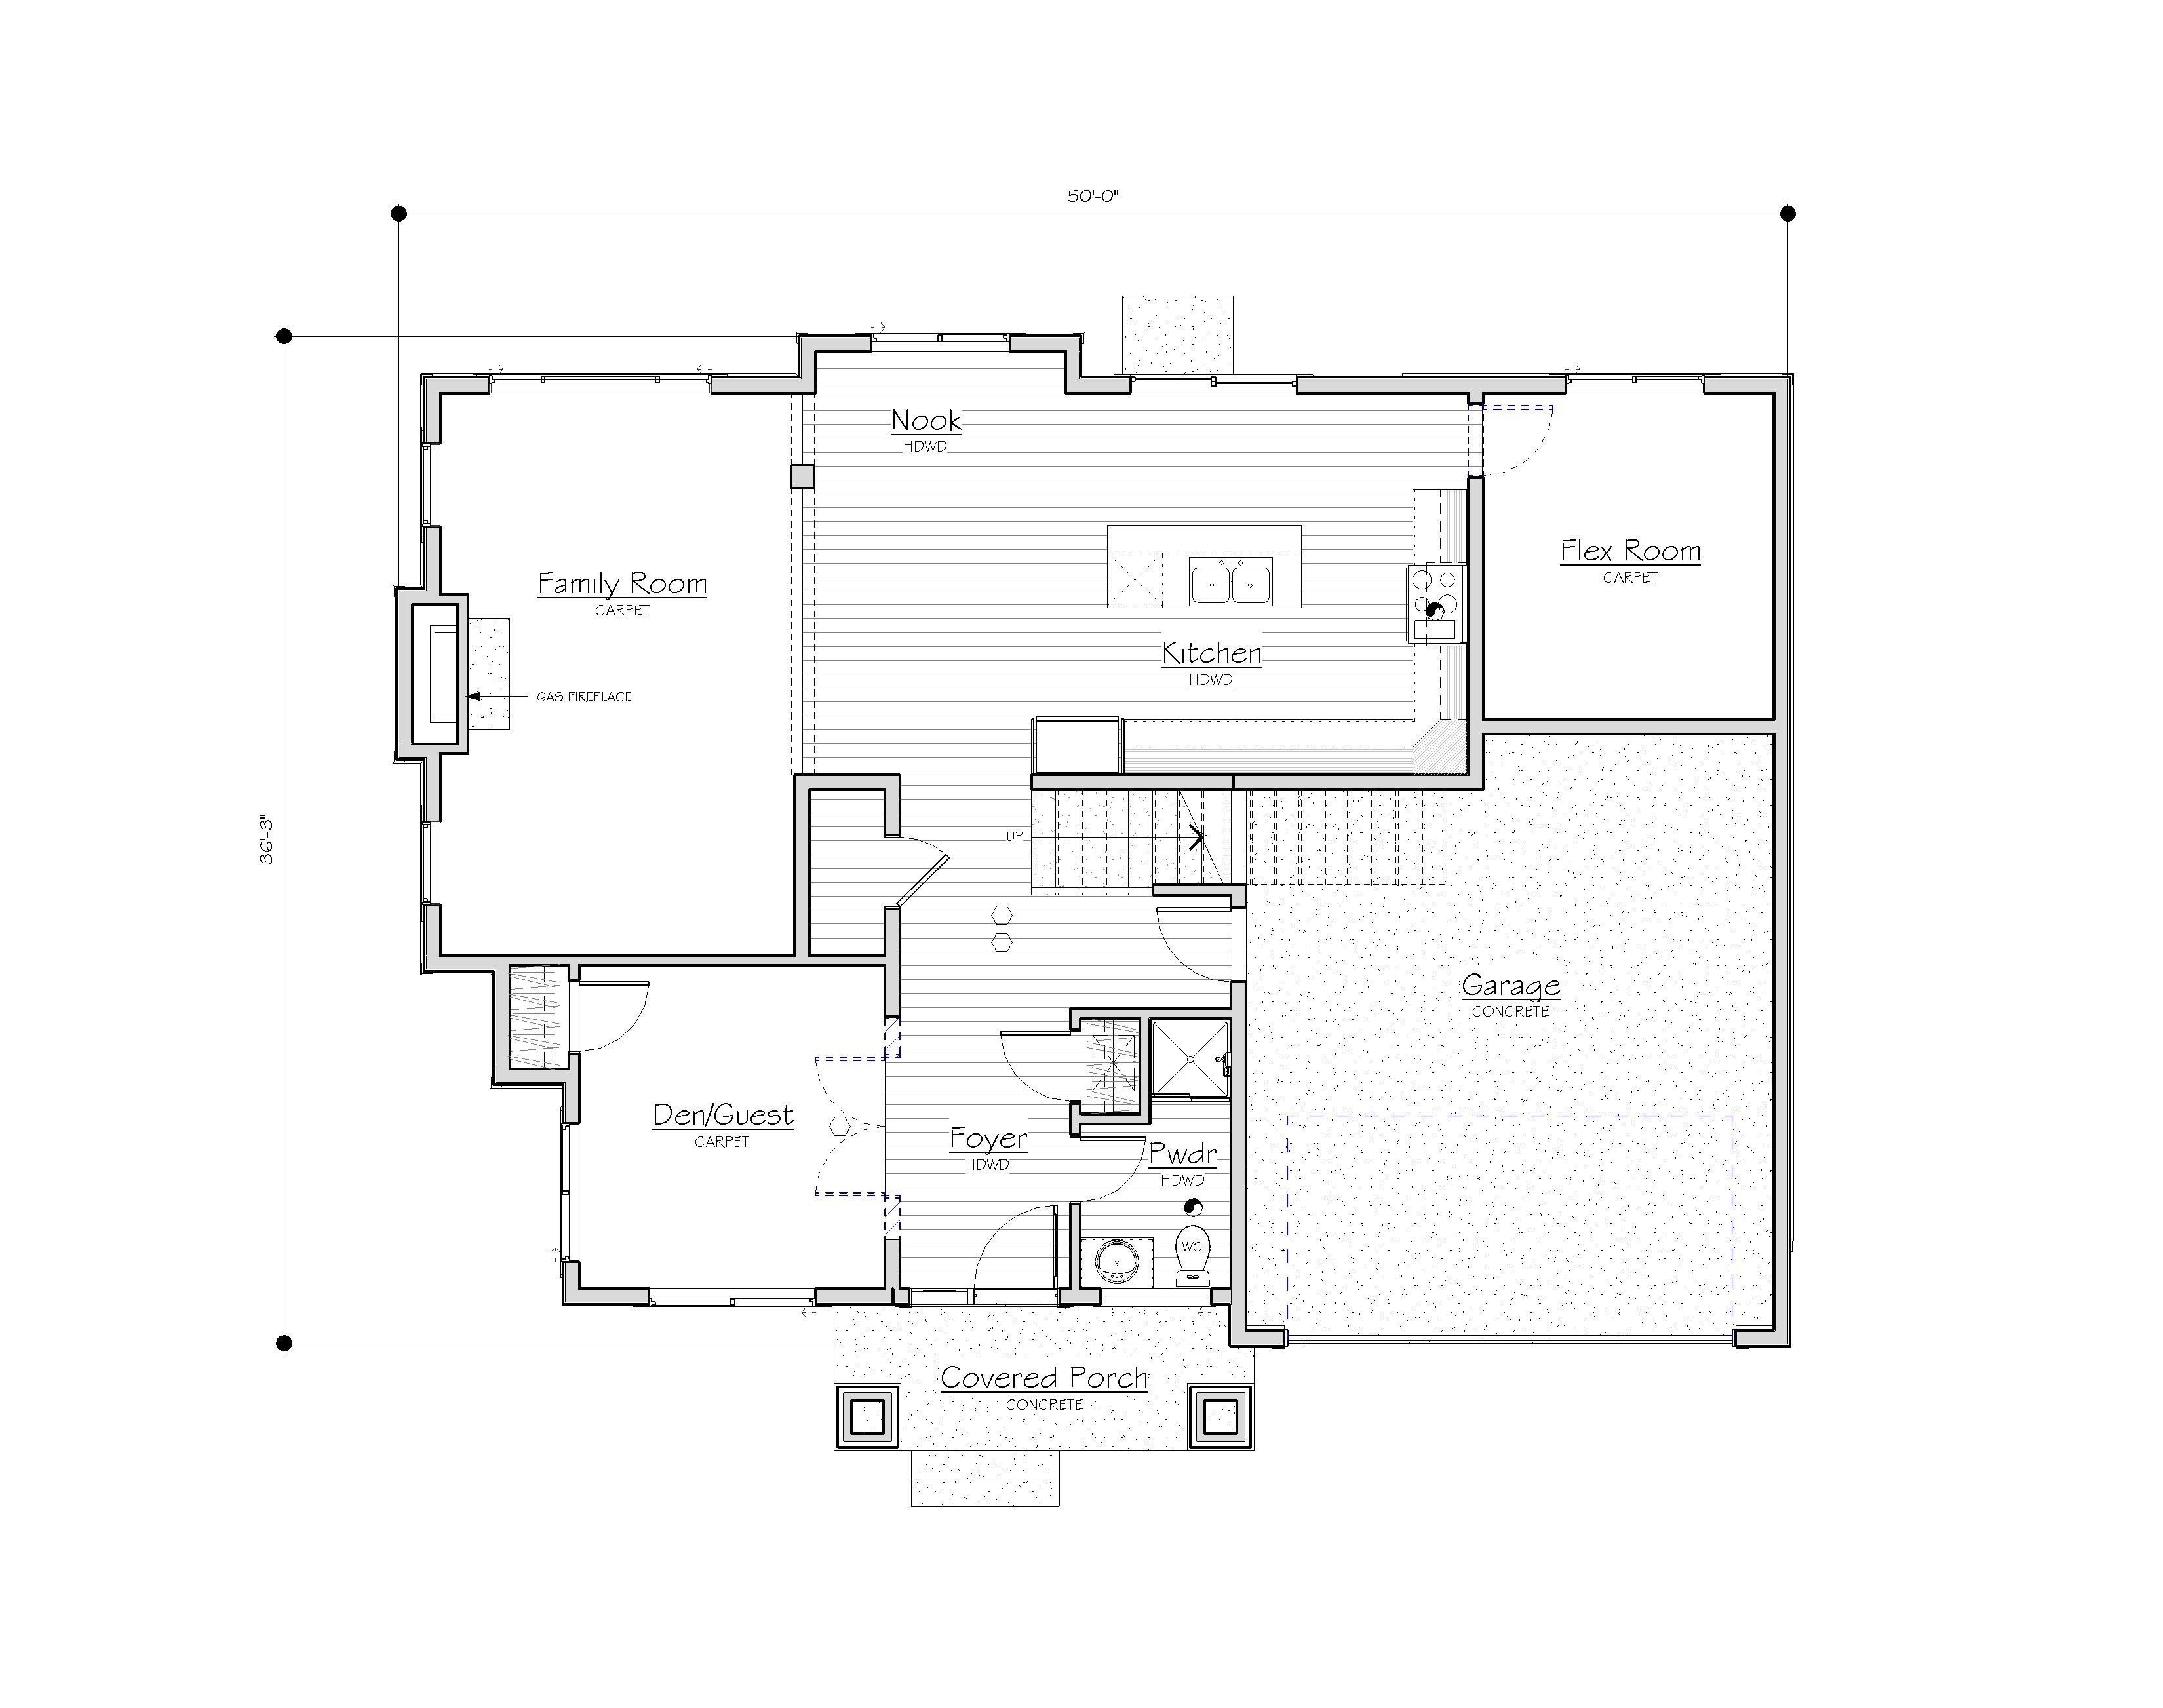 714 olympia ave ne lot 3 custom homes seattle bellevue for Copying house plans